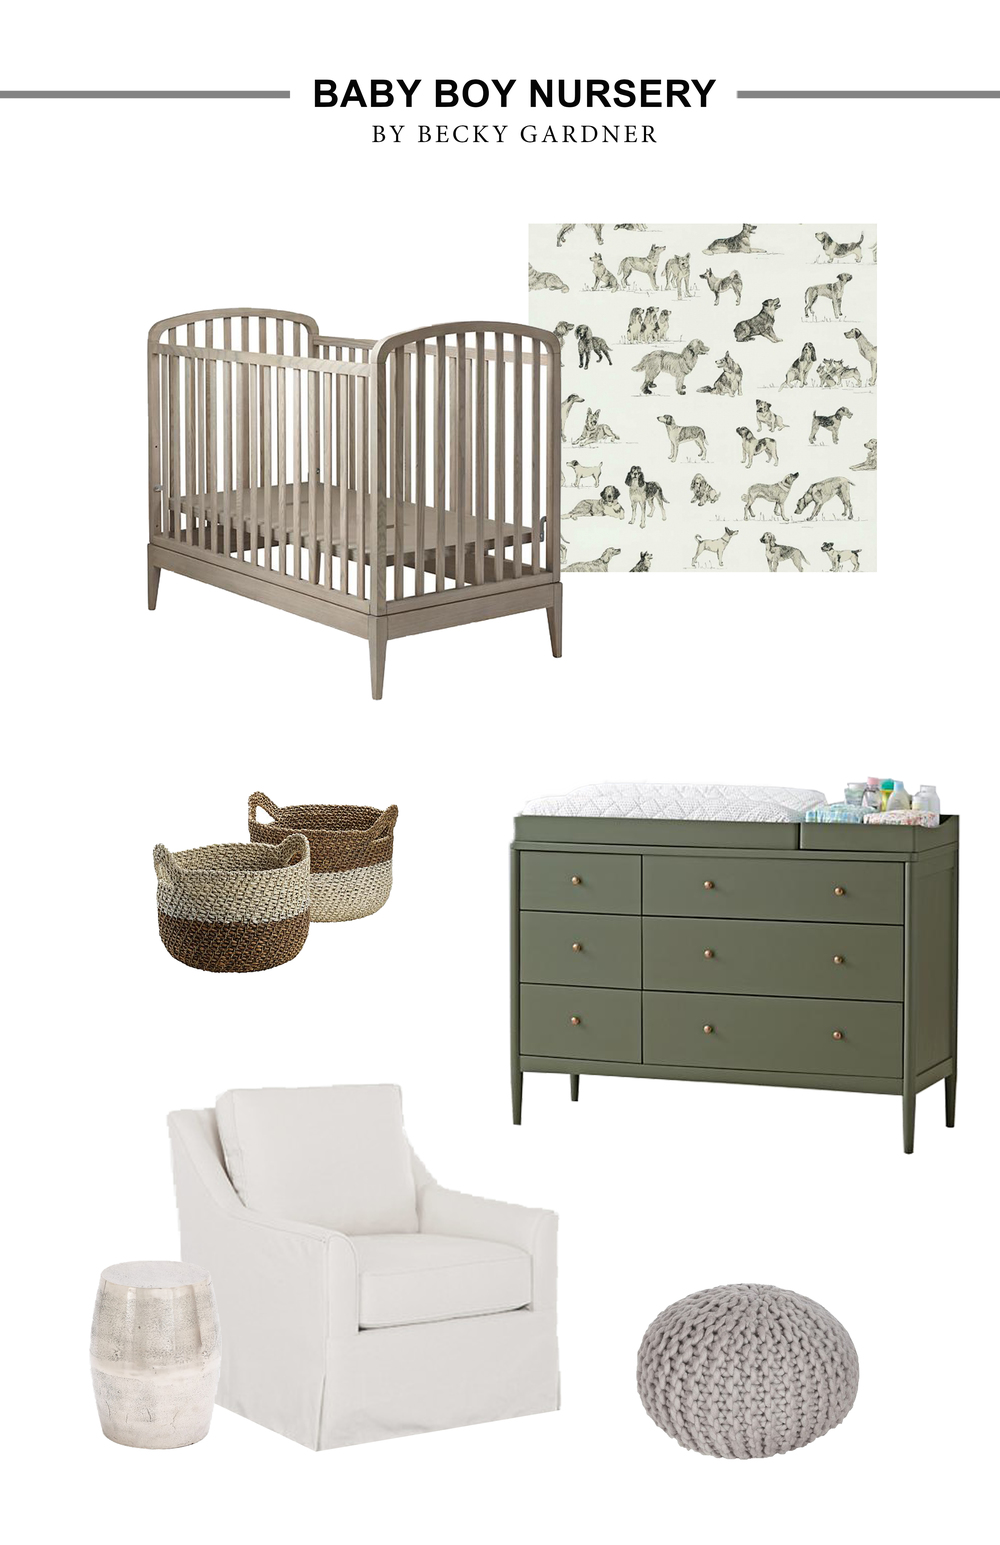 The cutest baby boy nursery! Such fun wallpaper and the green changing table is to die for! Click the picture to find out where you can get these items.